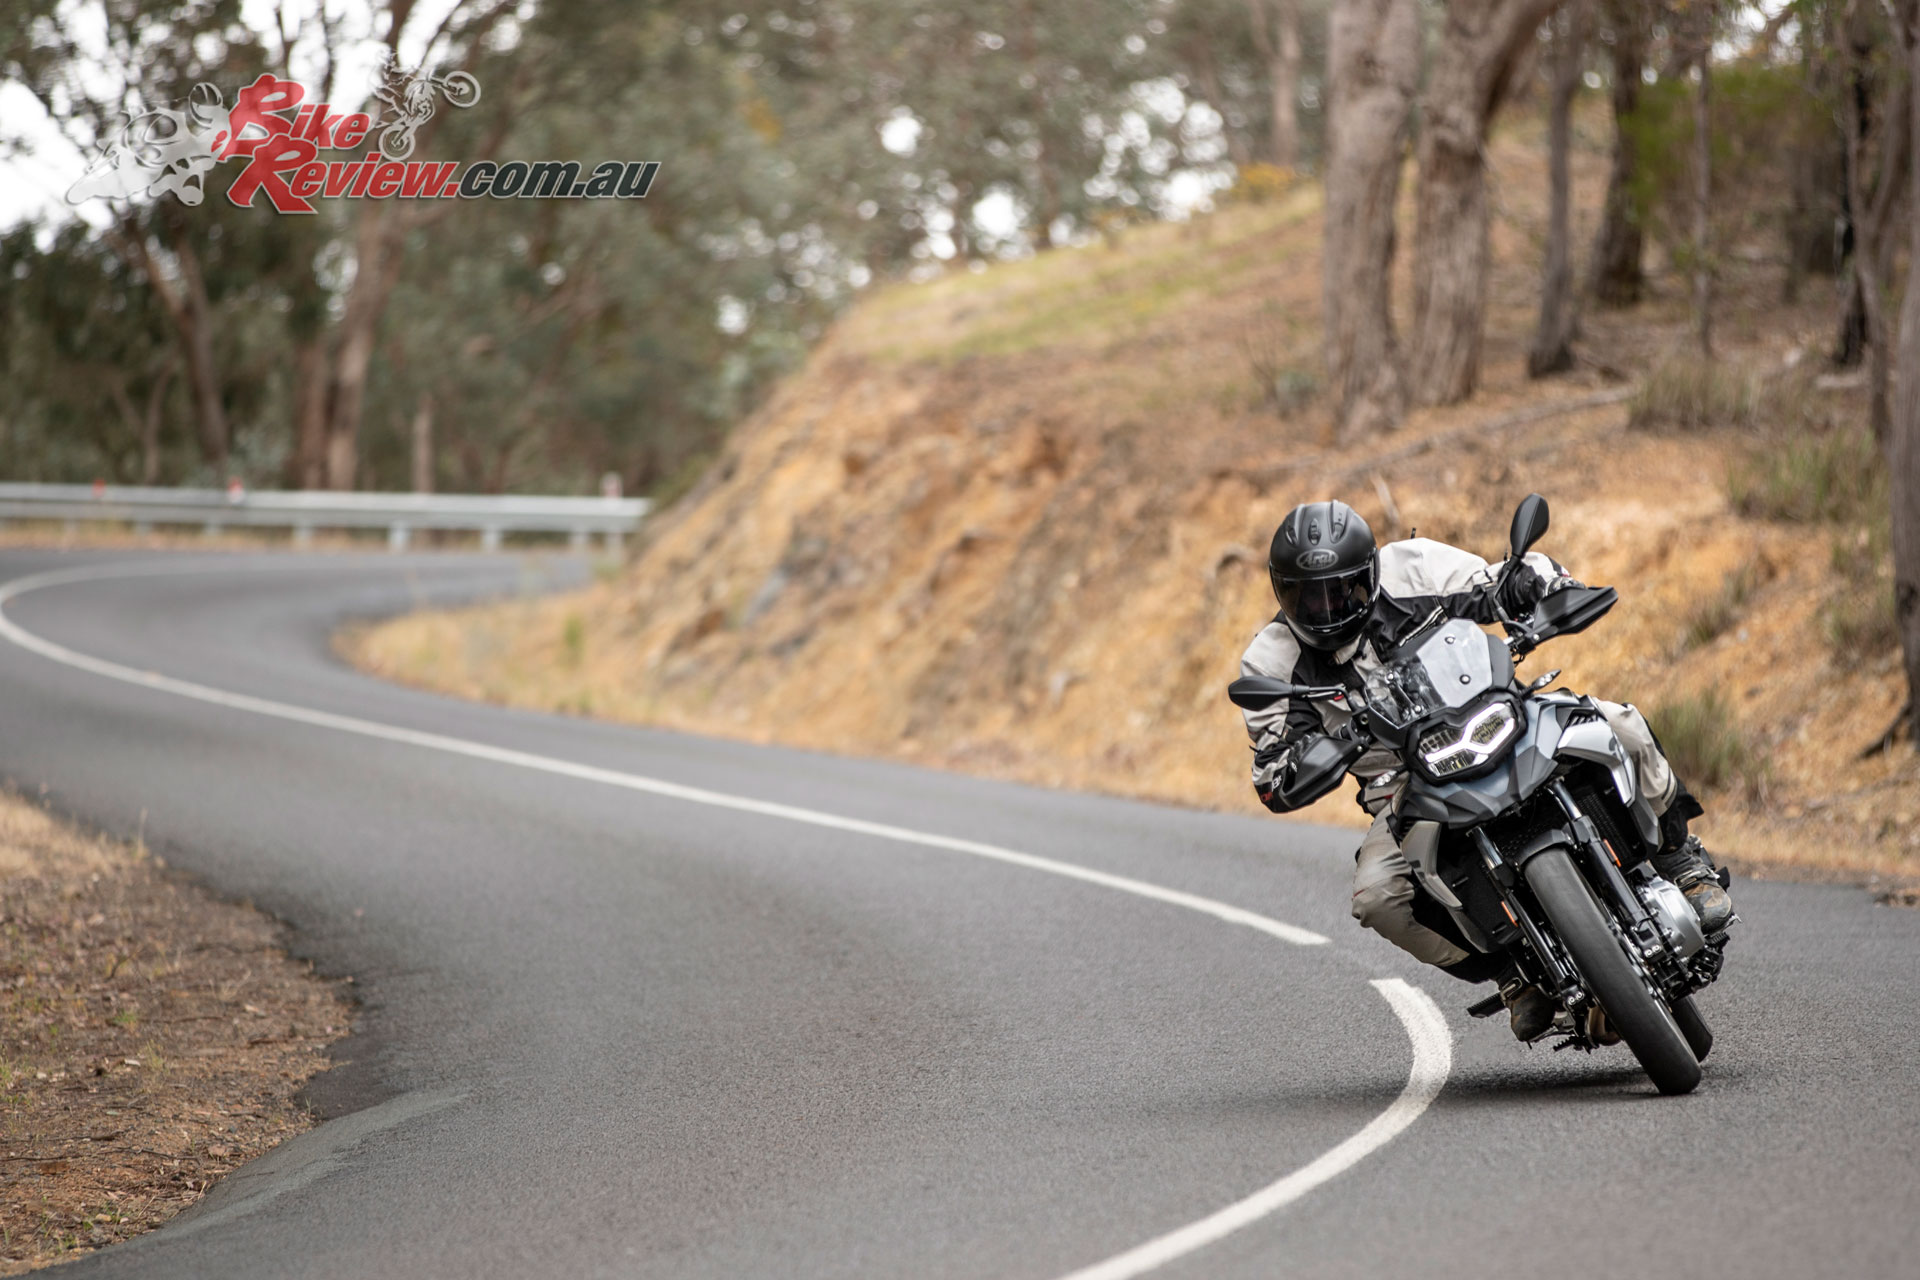 The 2019 F 750 GS is surprisingly capable through the tight twisties